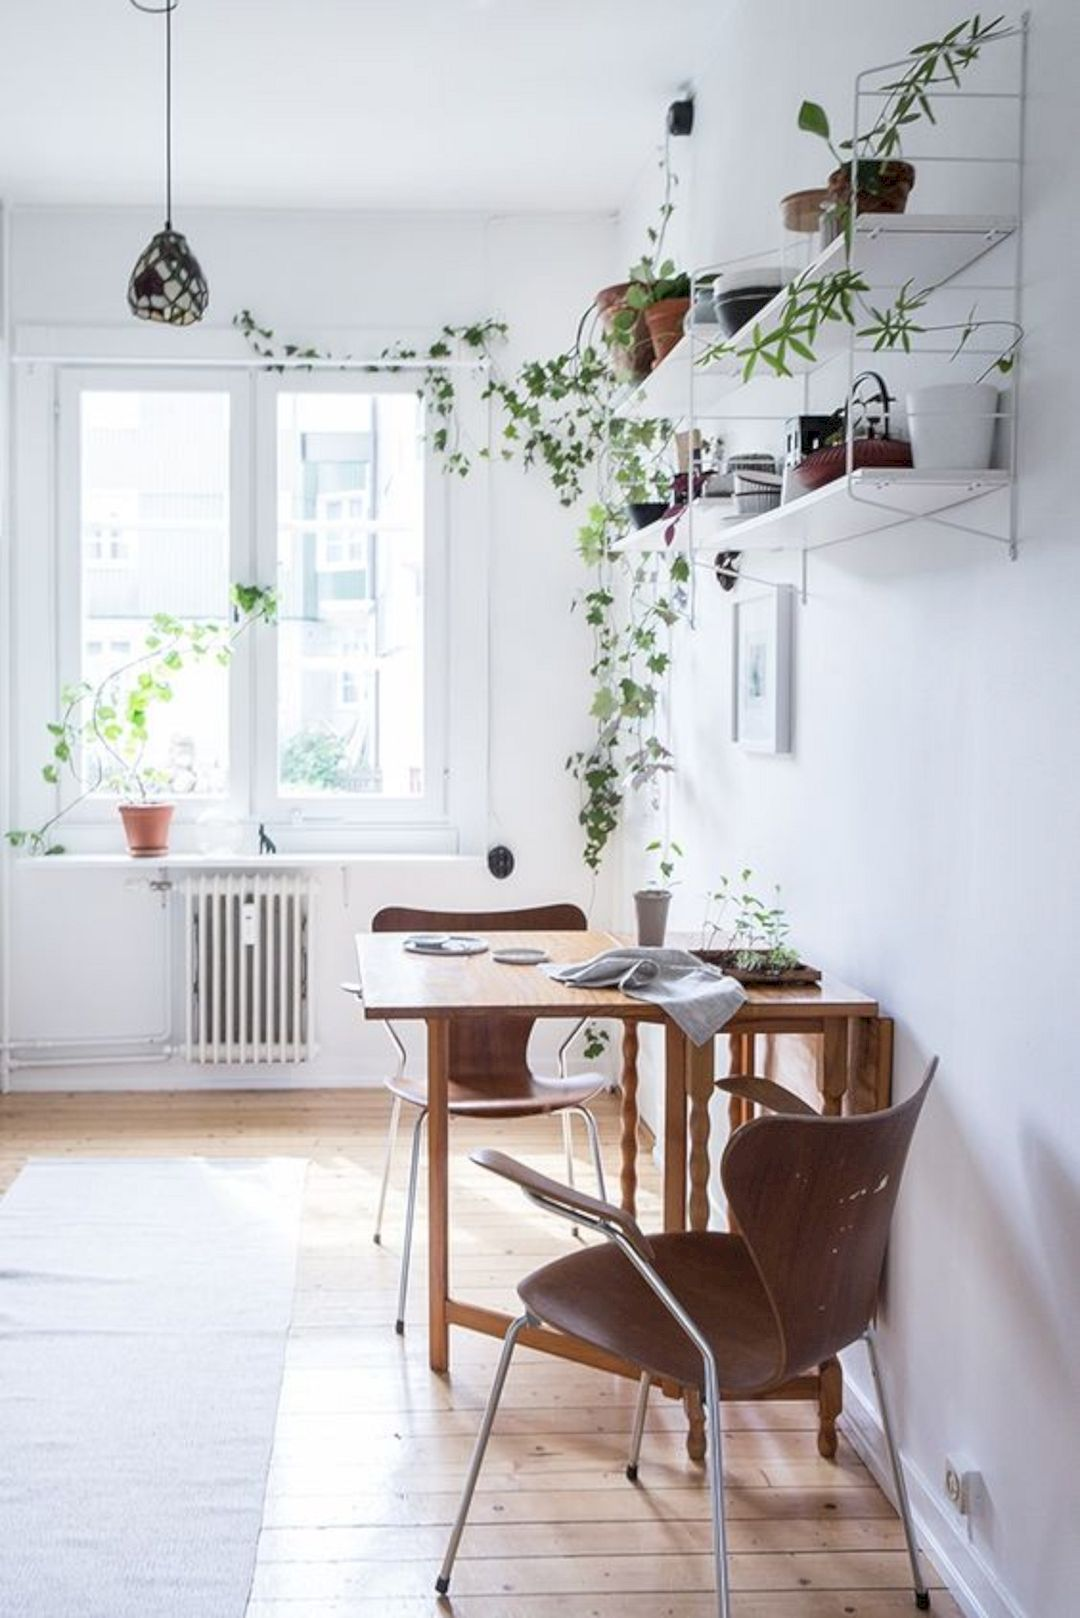 15 Inspiring Furniture Ideas For Your Studio Apartment House